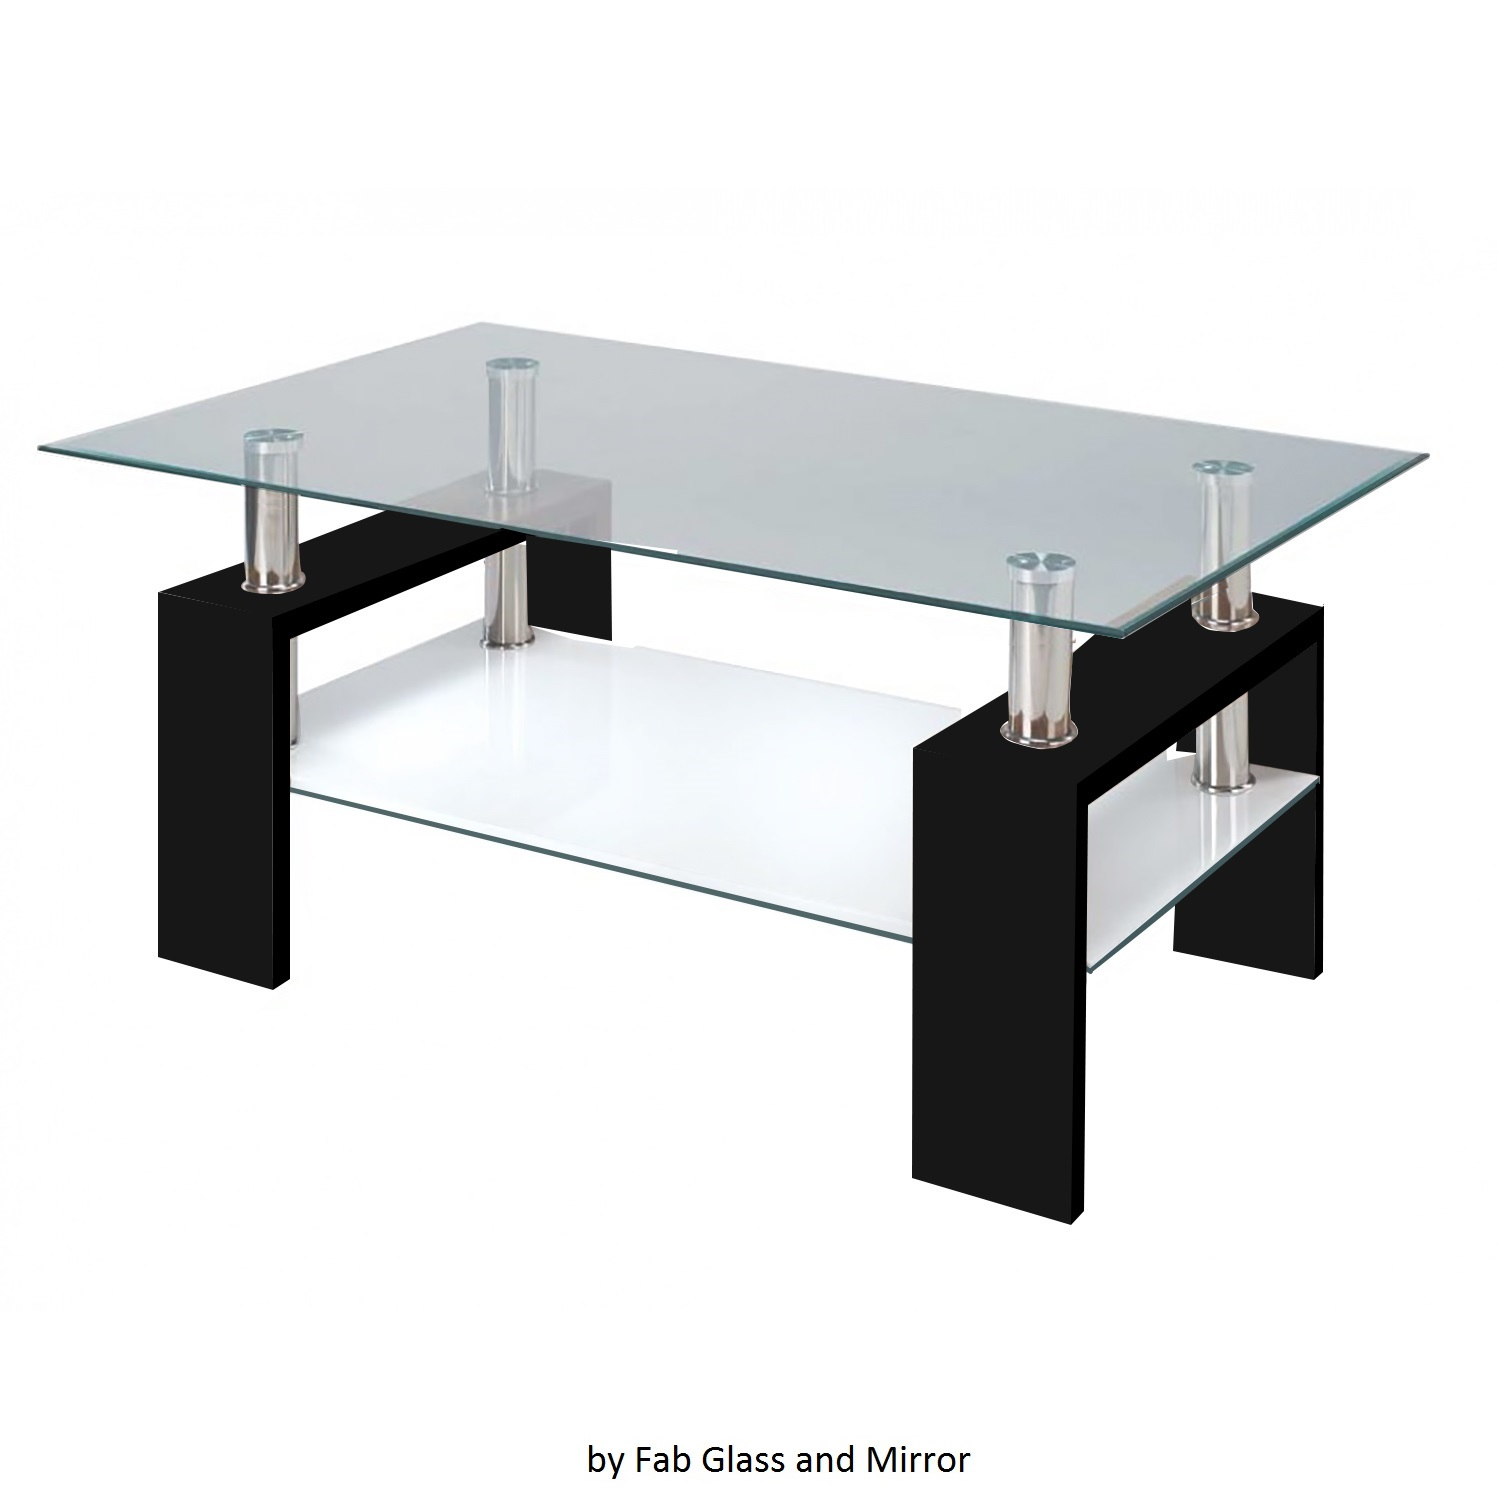 Fab Glass And Mirror Modern Glass Coffee Table W/ Shelf